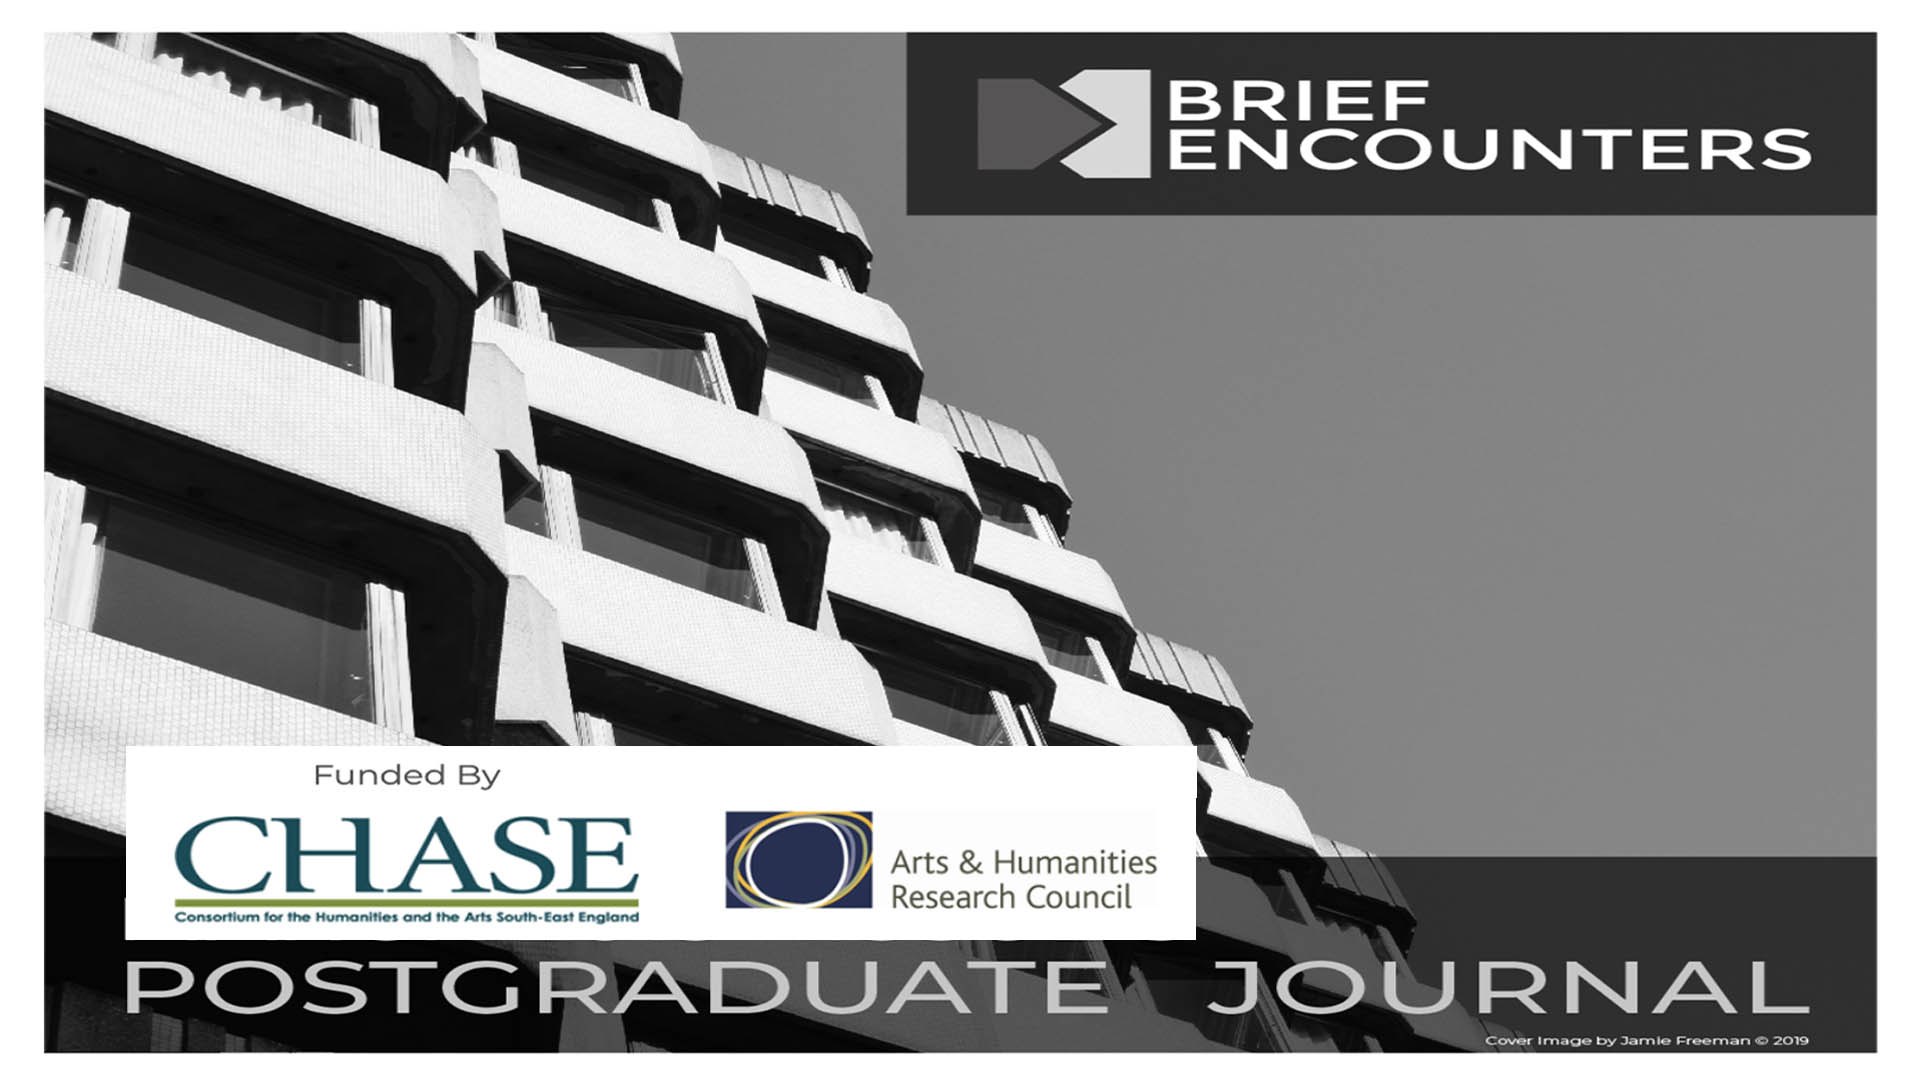 Communication editor at the 'Brief Encounters' a postgraduate journal